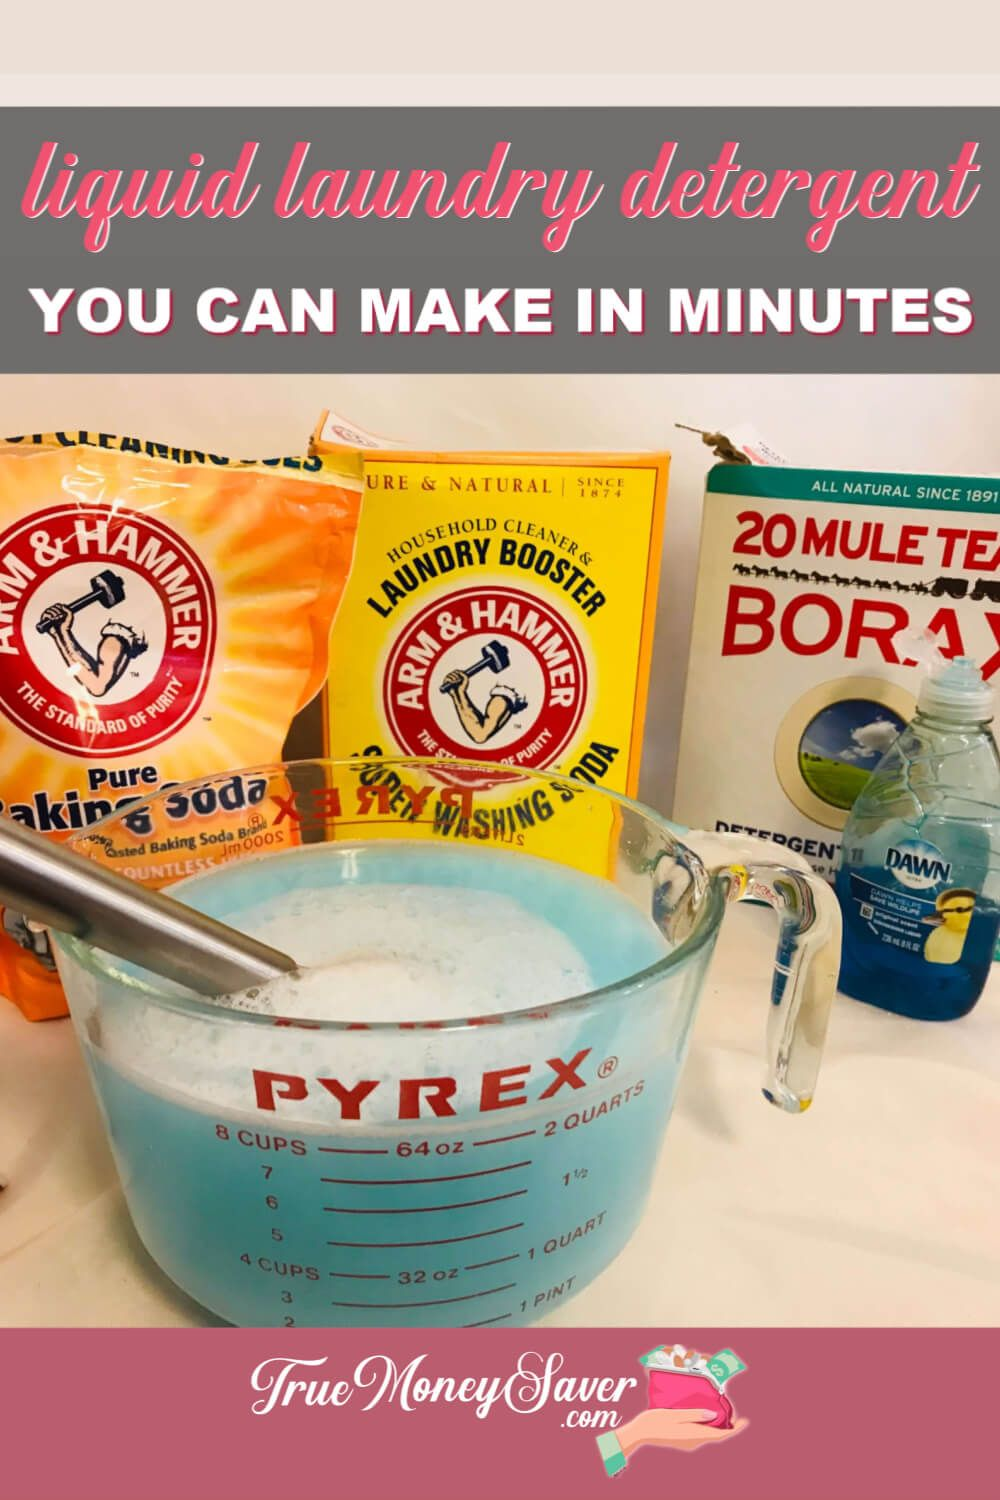 The Best Liquid Laundry Detergent You Can Diy In Minutes In 2020